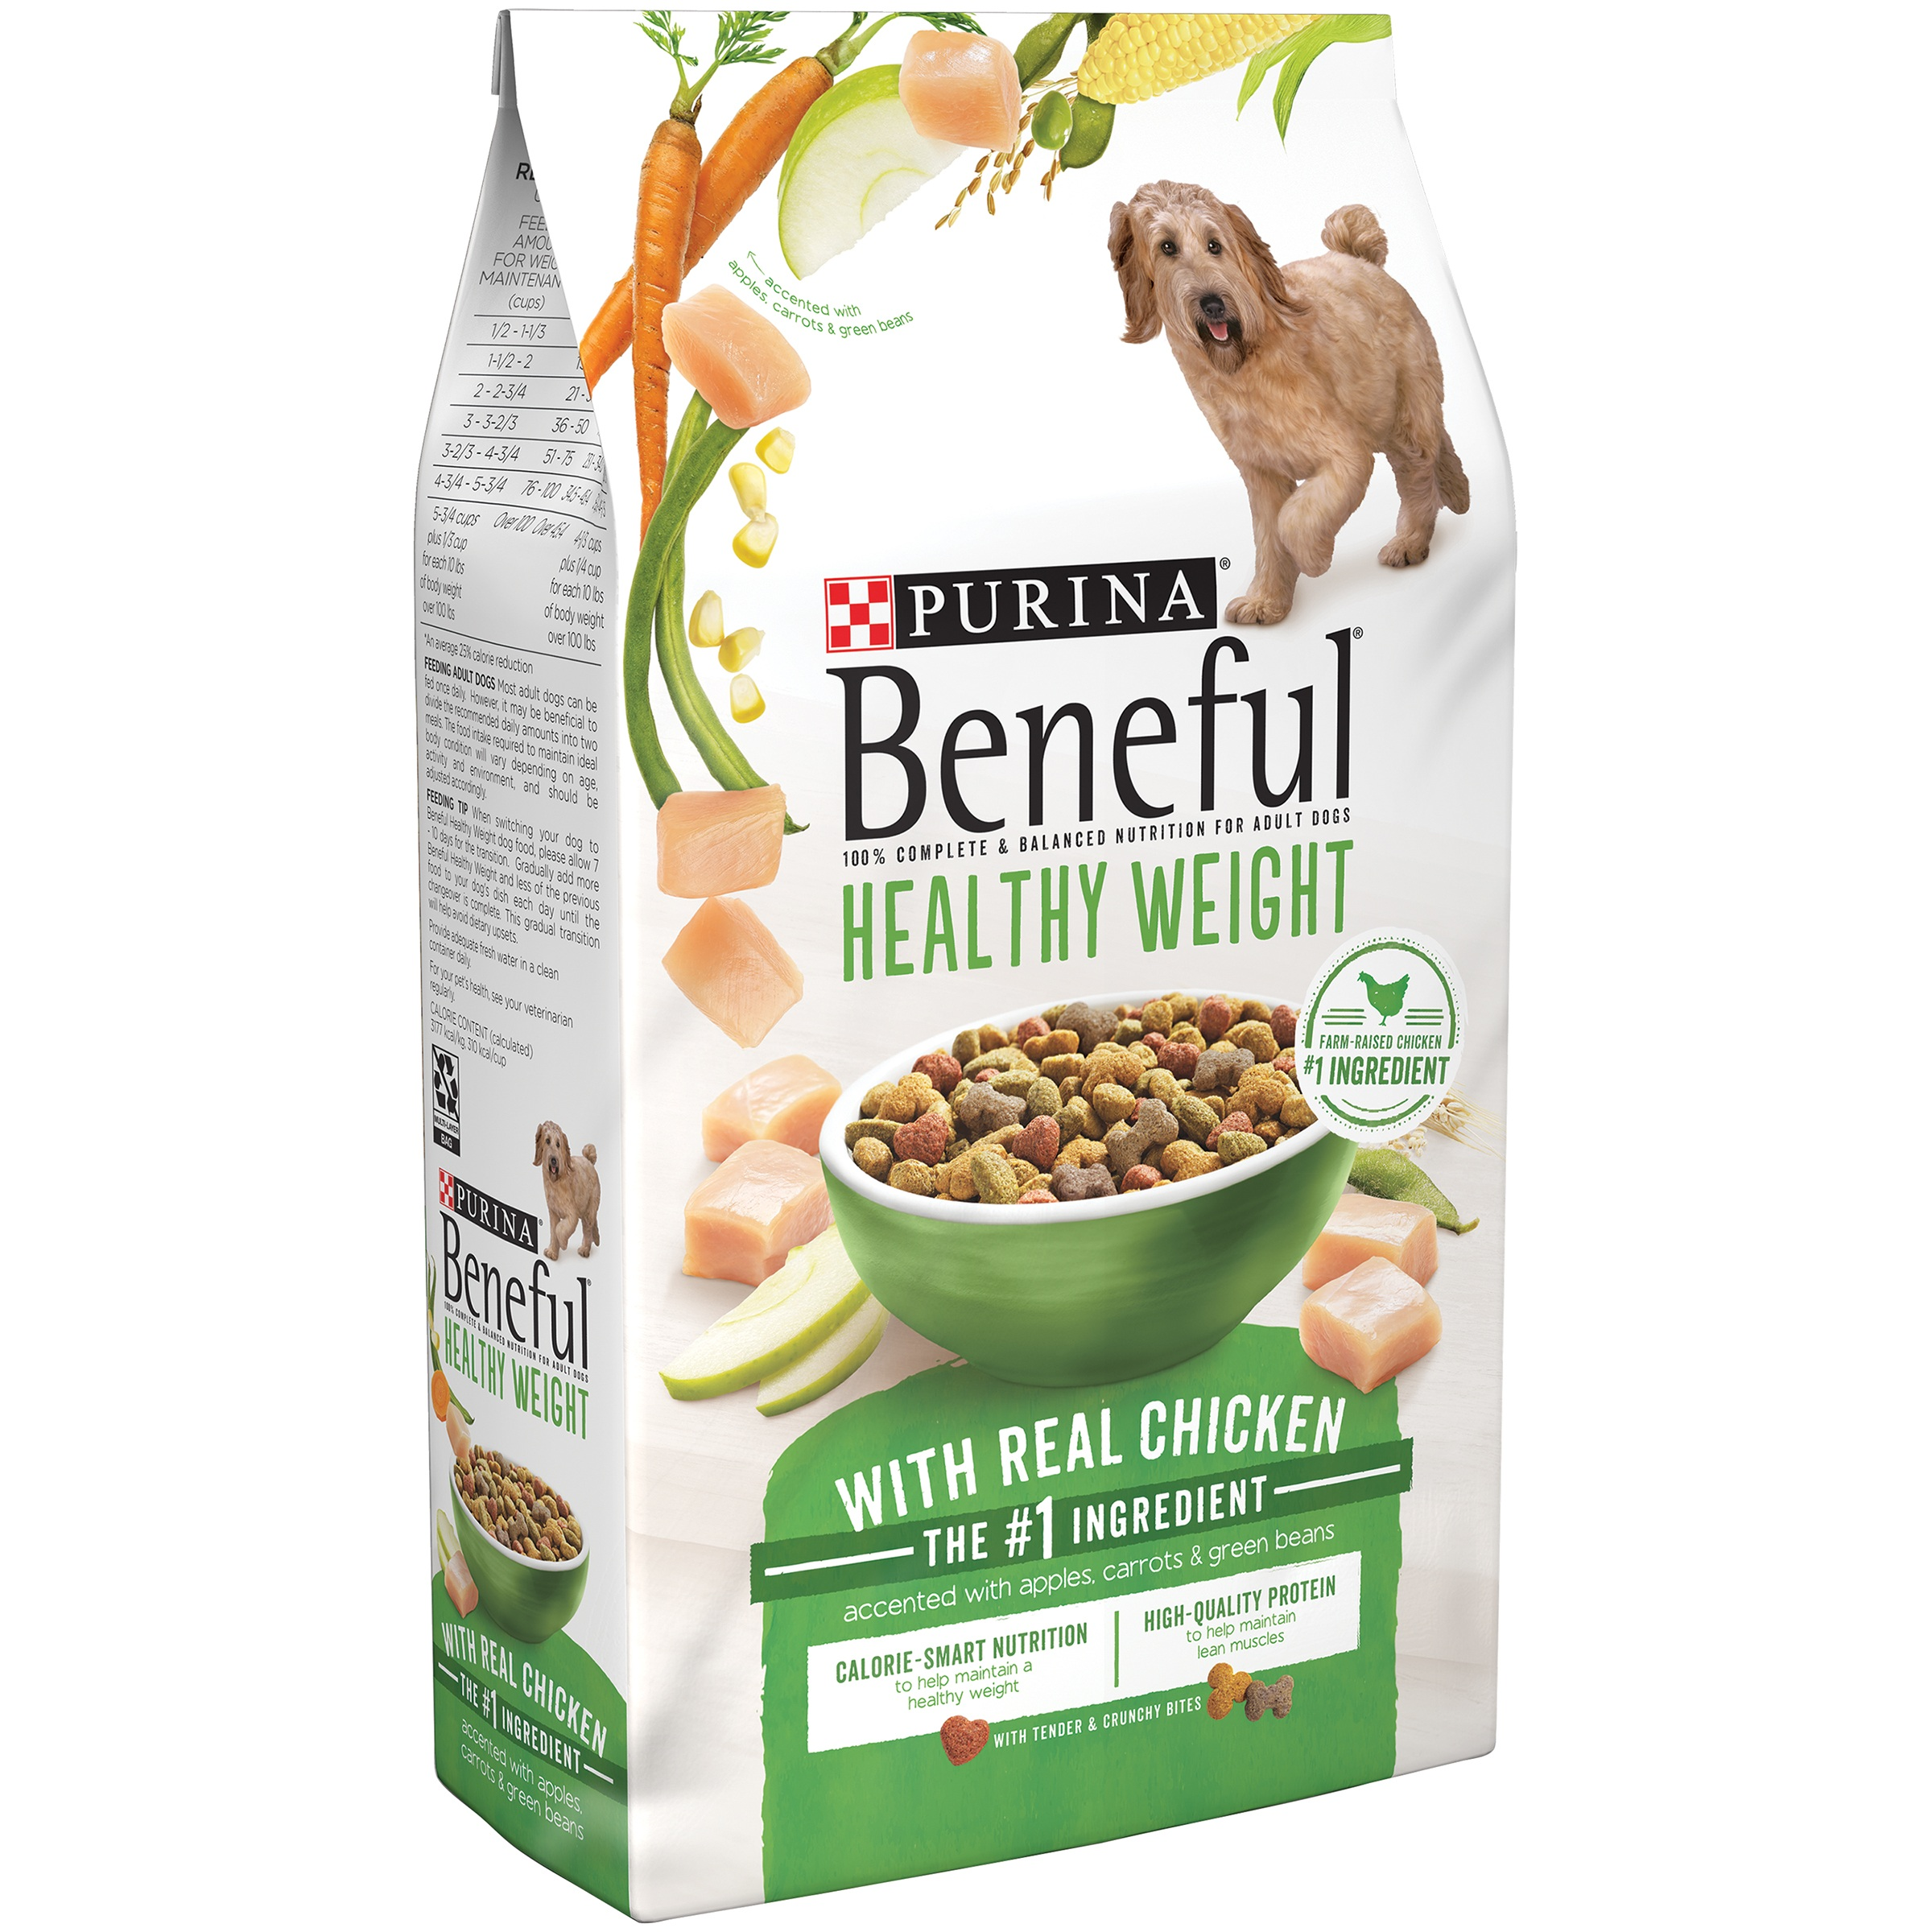 Purina Beneful Healthy Weight With Real Chicken Dry Dog Food 31.1lb. Bag